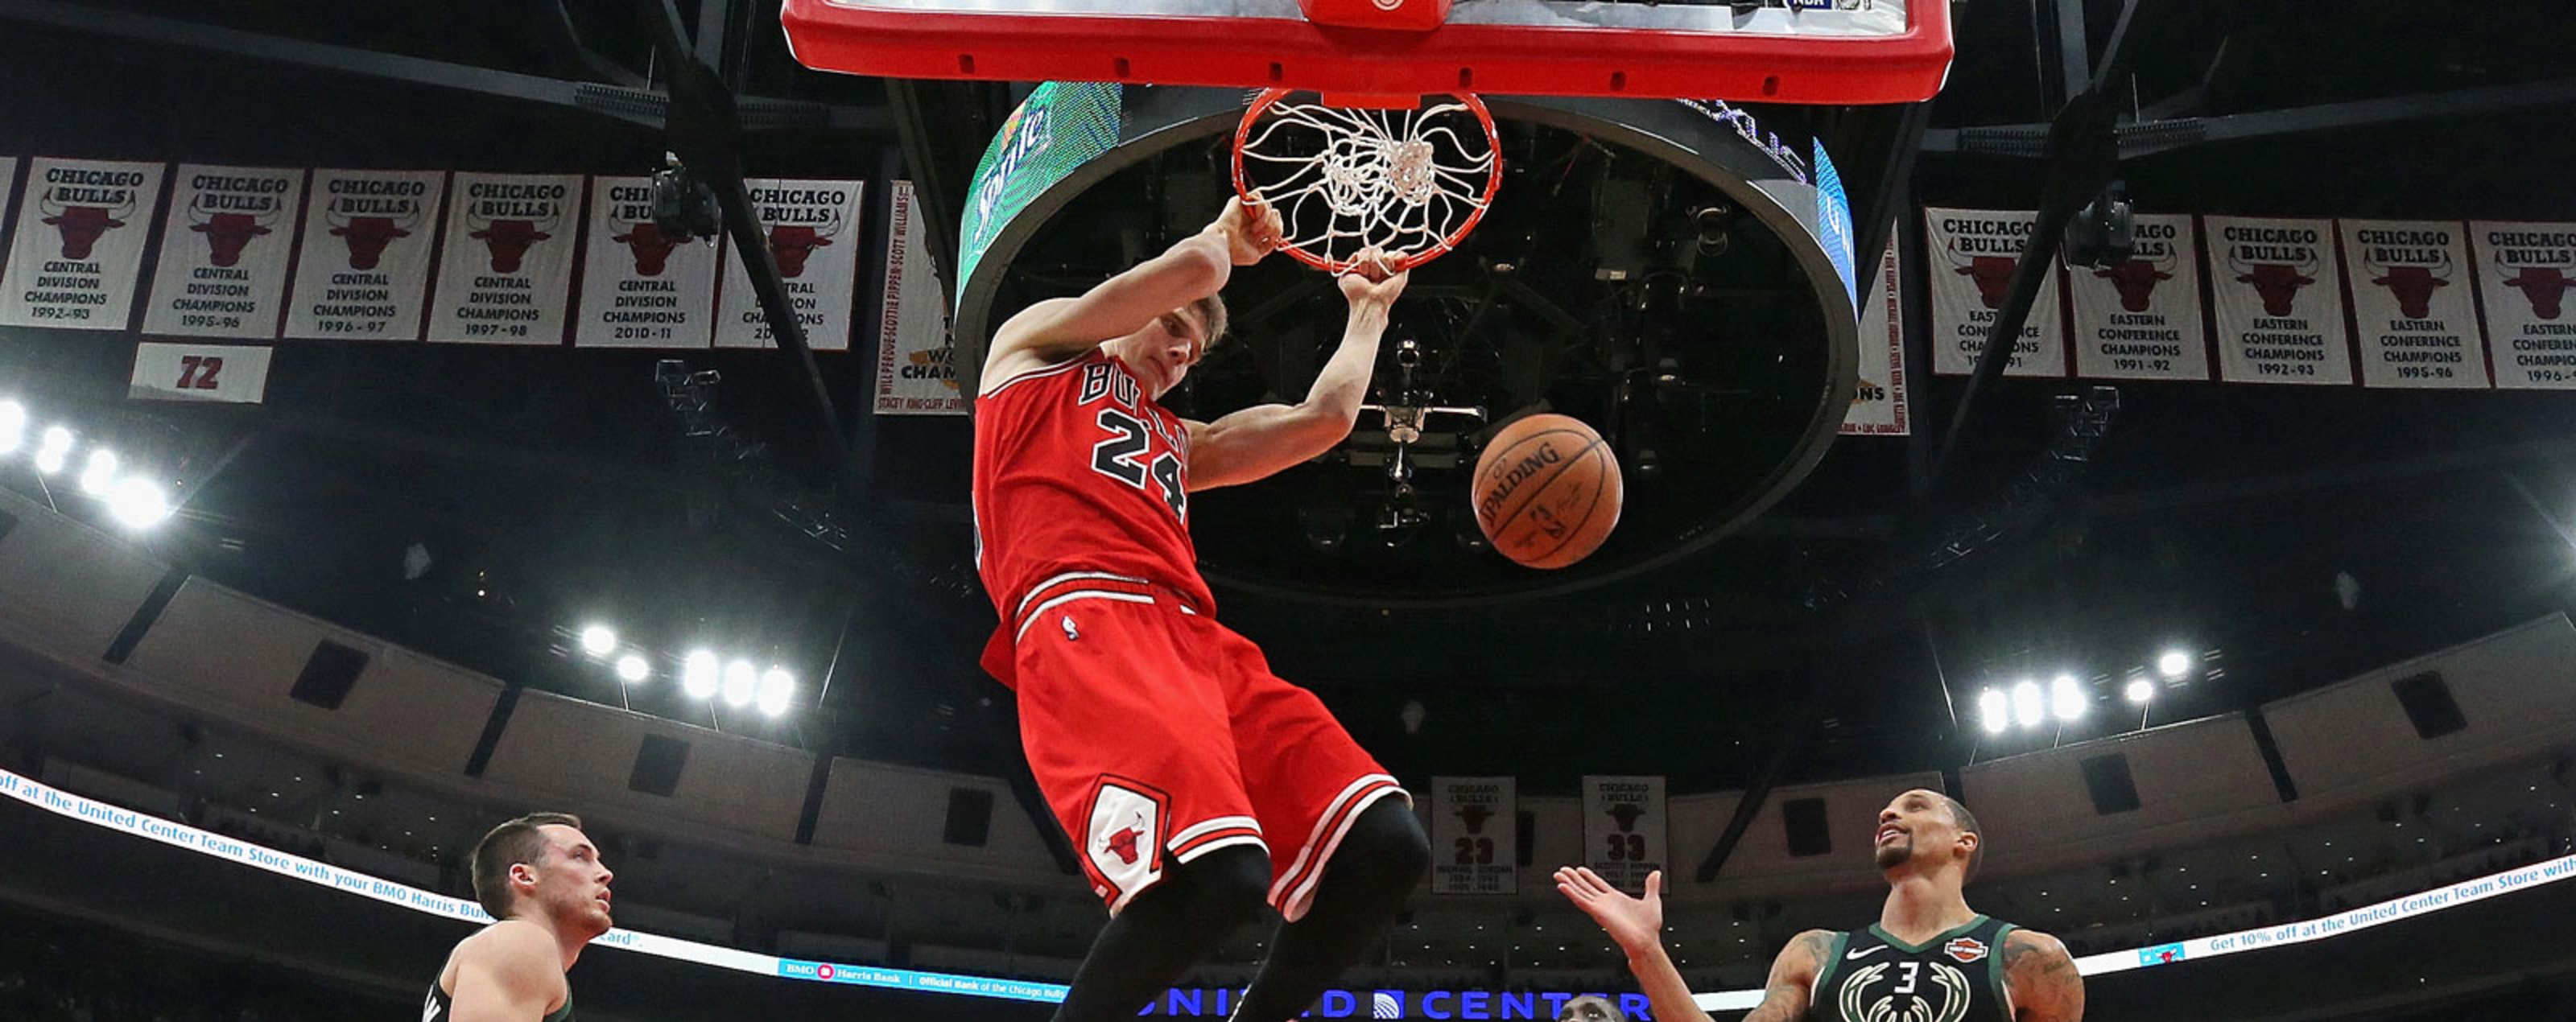 b25d905d467e Lauri Markkanen dunks the ball against the Milwaukee Bucks.